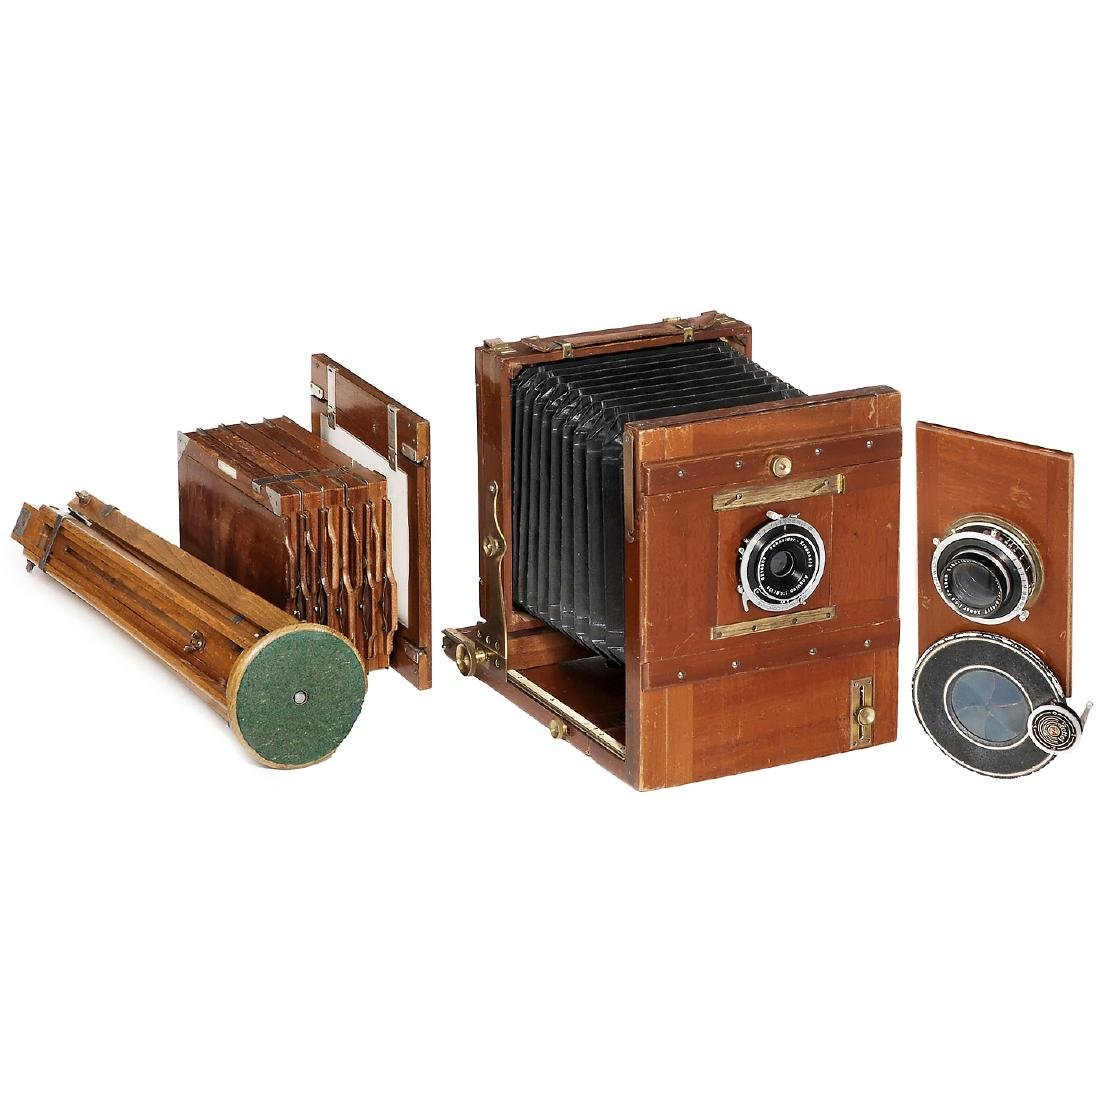 German Field Camera with 2 Lenses, c. 1890-1900